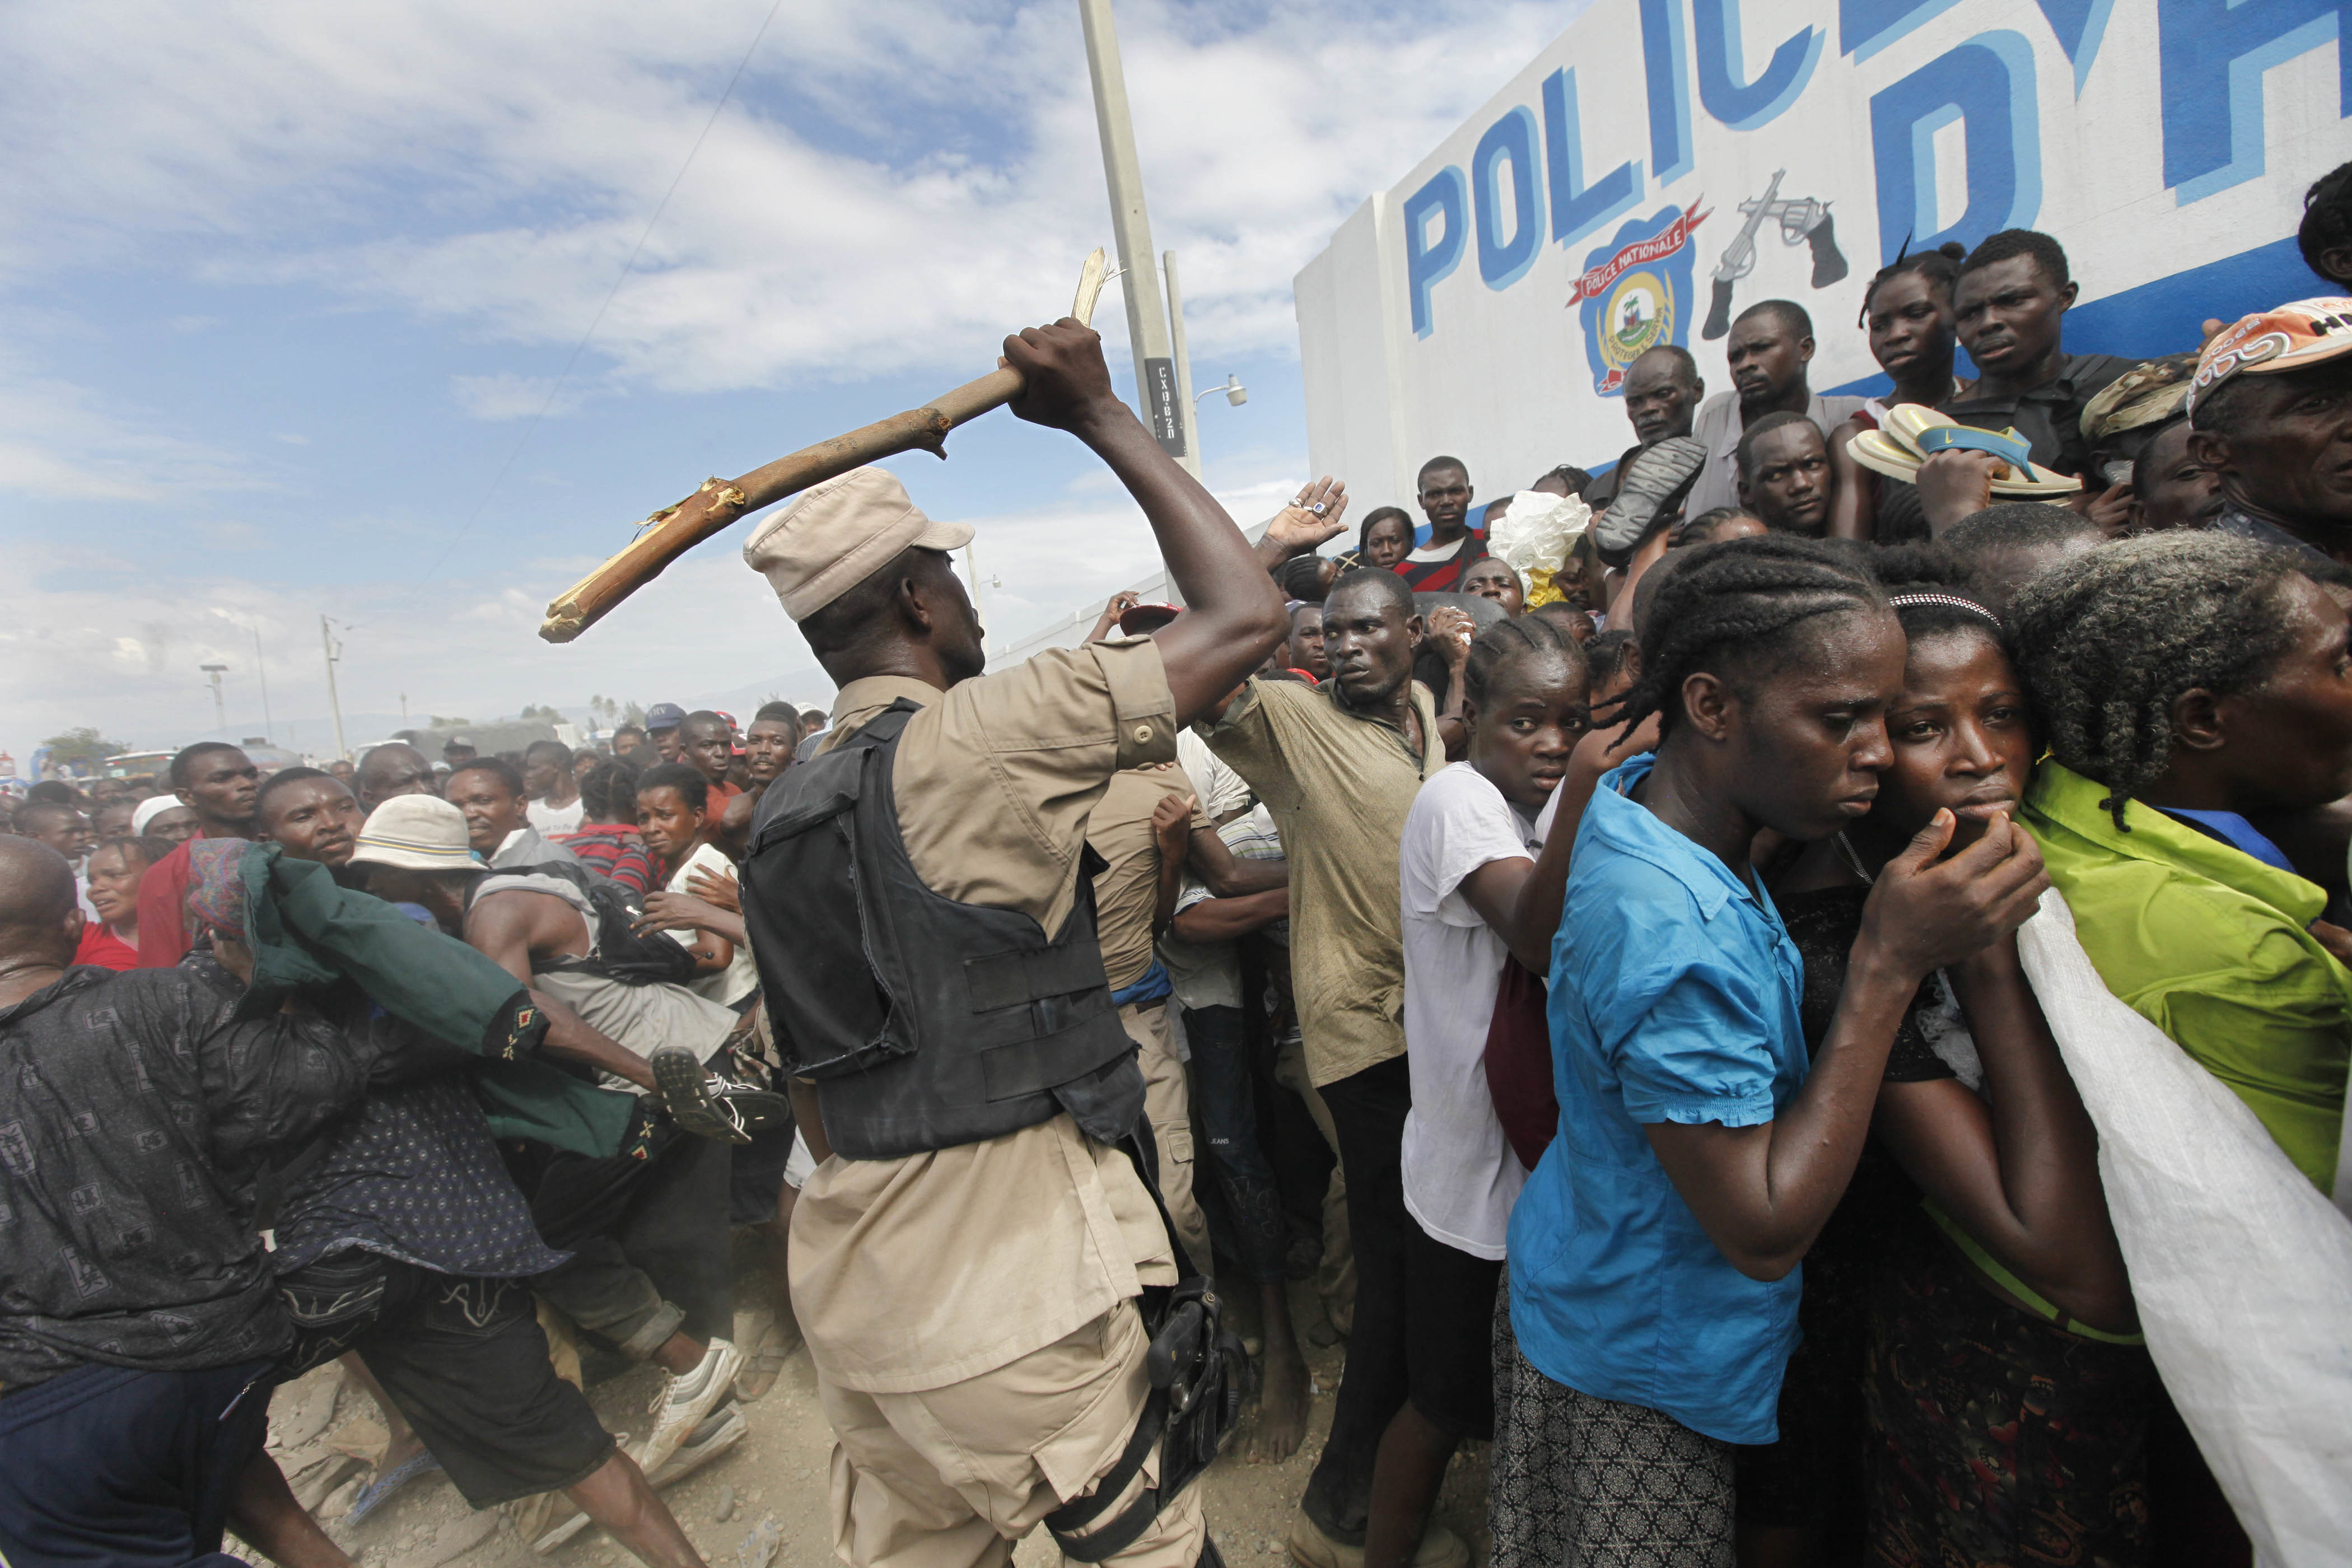 FILE - In this Jan. 26, 2010, file photo, Haitian police use sticks to try and keep the crowd in order at a food distribution point in the Cite Soleil neighborhood in the aftermath of the Jan. 12 earthquake in Port-au-Prince. The Trump administration is hunting for evidence of crimes committed by Haitian immigrants as it decides whether to allow them to continue participating in a humanitarian program that has shielded tens of thousands from deportation since the 2010 earthquake. The Homeland Security Department has not made a final decision about Temporary Protected Status for Haiti and declined to comment on the pre-decisional process. The Obama administration included Haiti in the program shortly after the January 2010 earthquake that killed as many as 300,000 people and devastated schools, hospitals, homes and even entire neighborhoods. (AP Photo/Gerald Herbert, File)